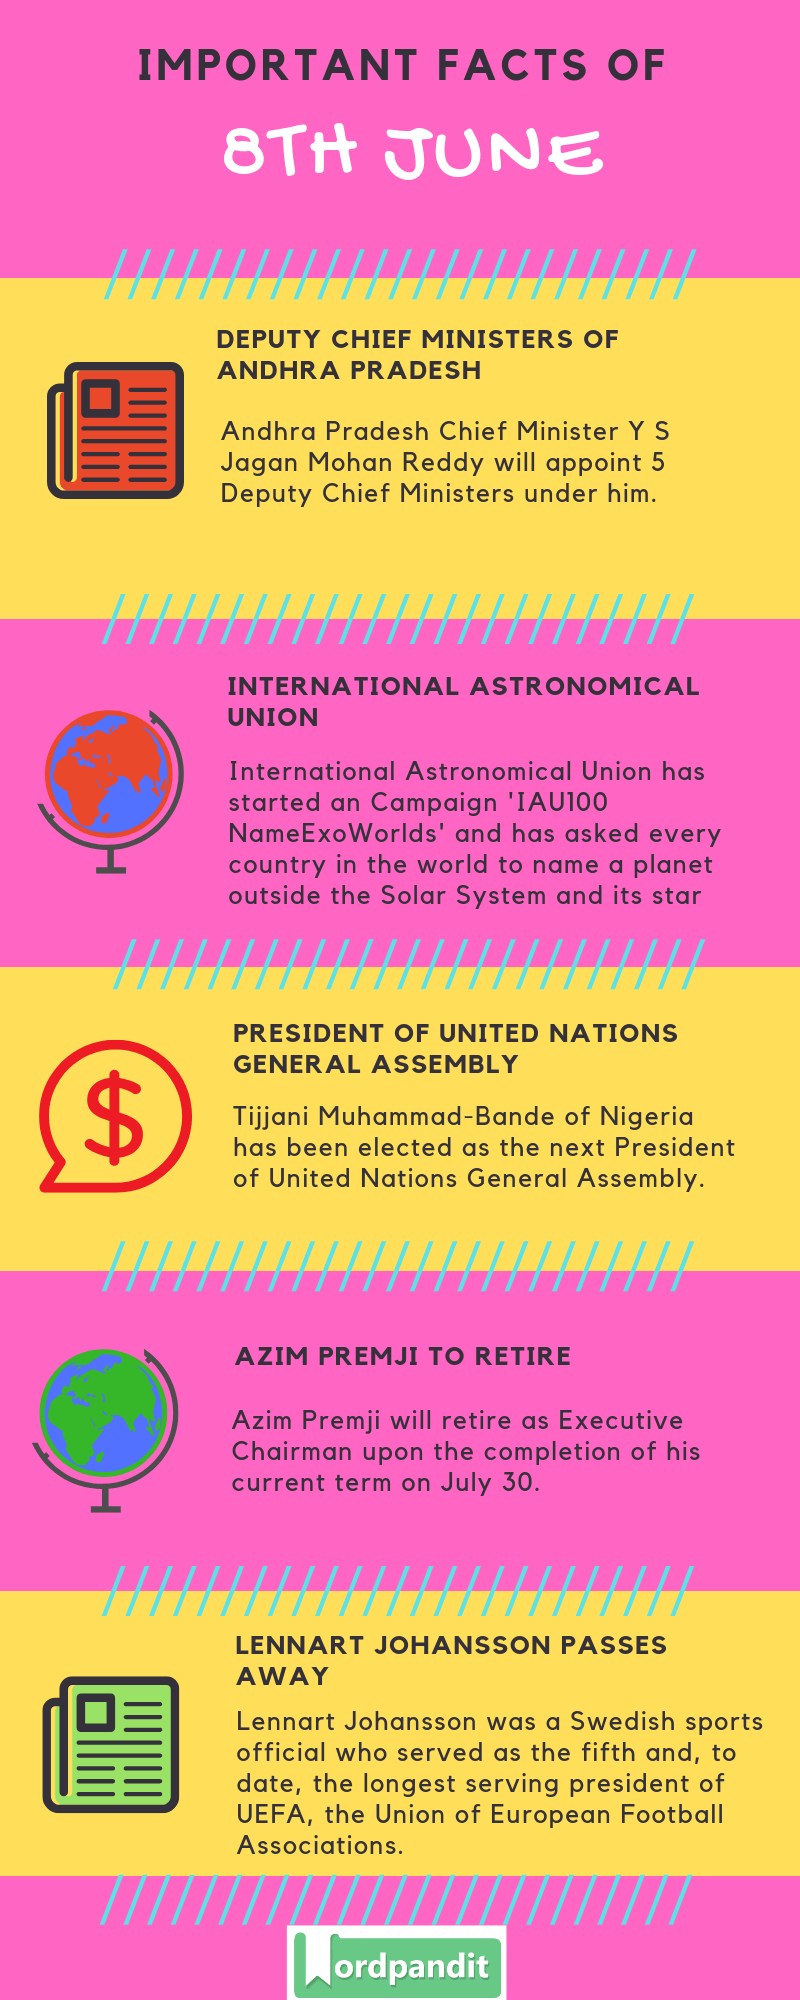 Daily Current Affairs 8 June 2019 Current Affairs Quiz 8 June 2019 Current Affairs Infographic